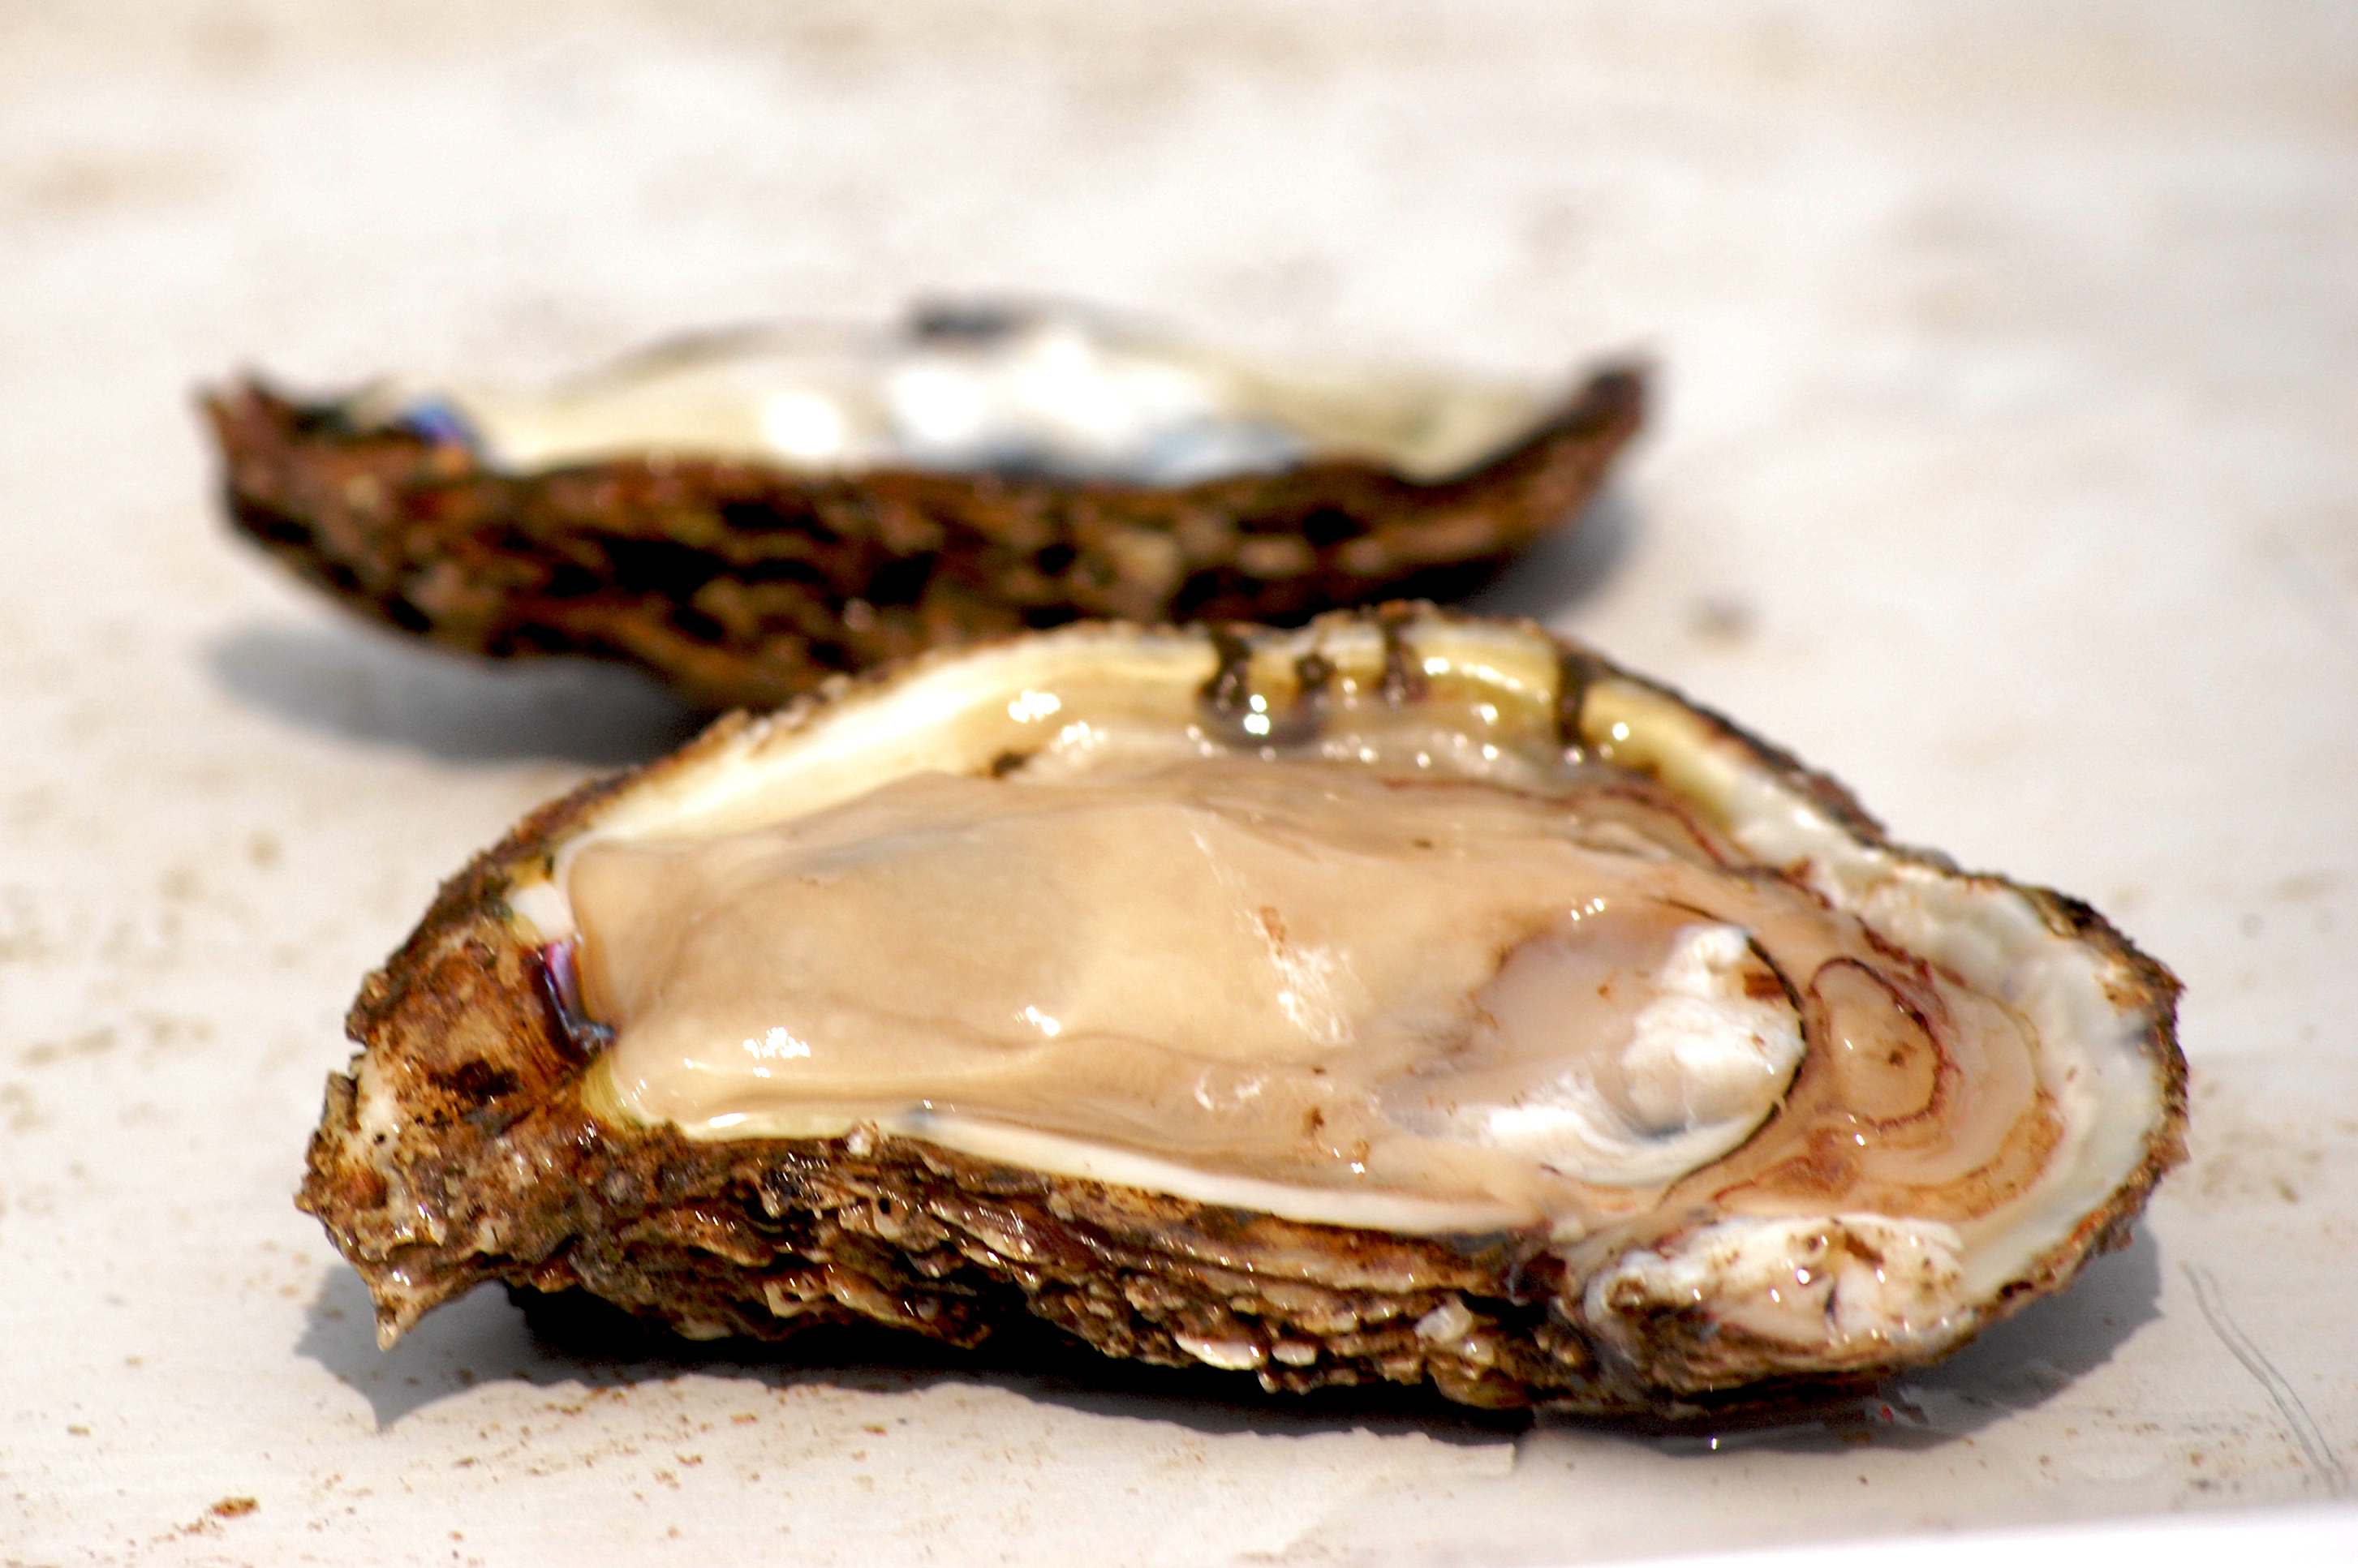 Oysters, Photo Credit: chesbayprogram via Compfight